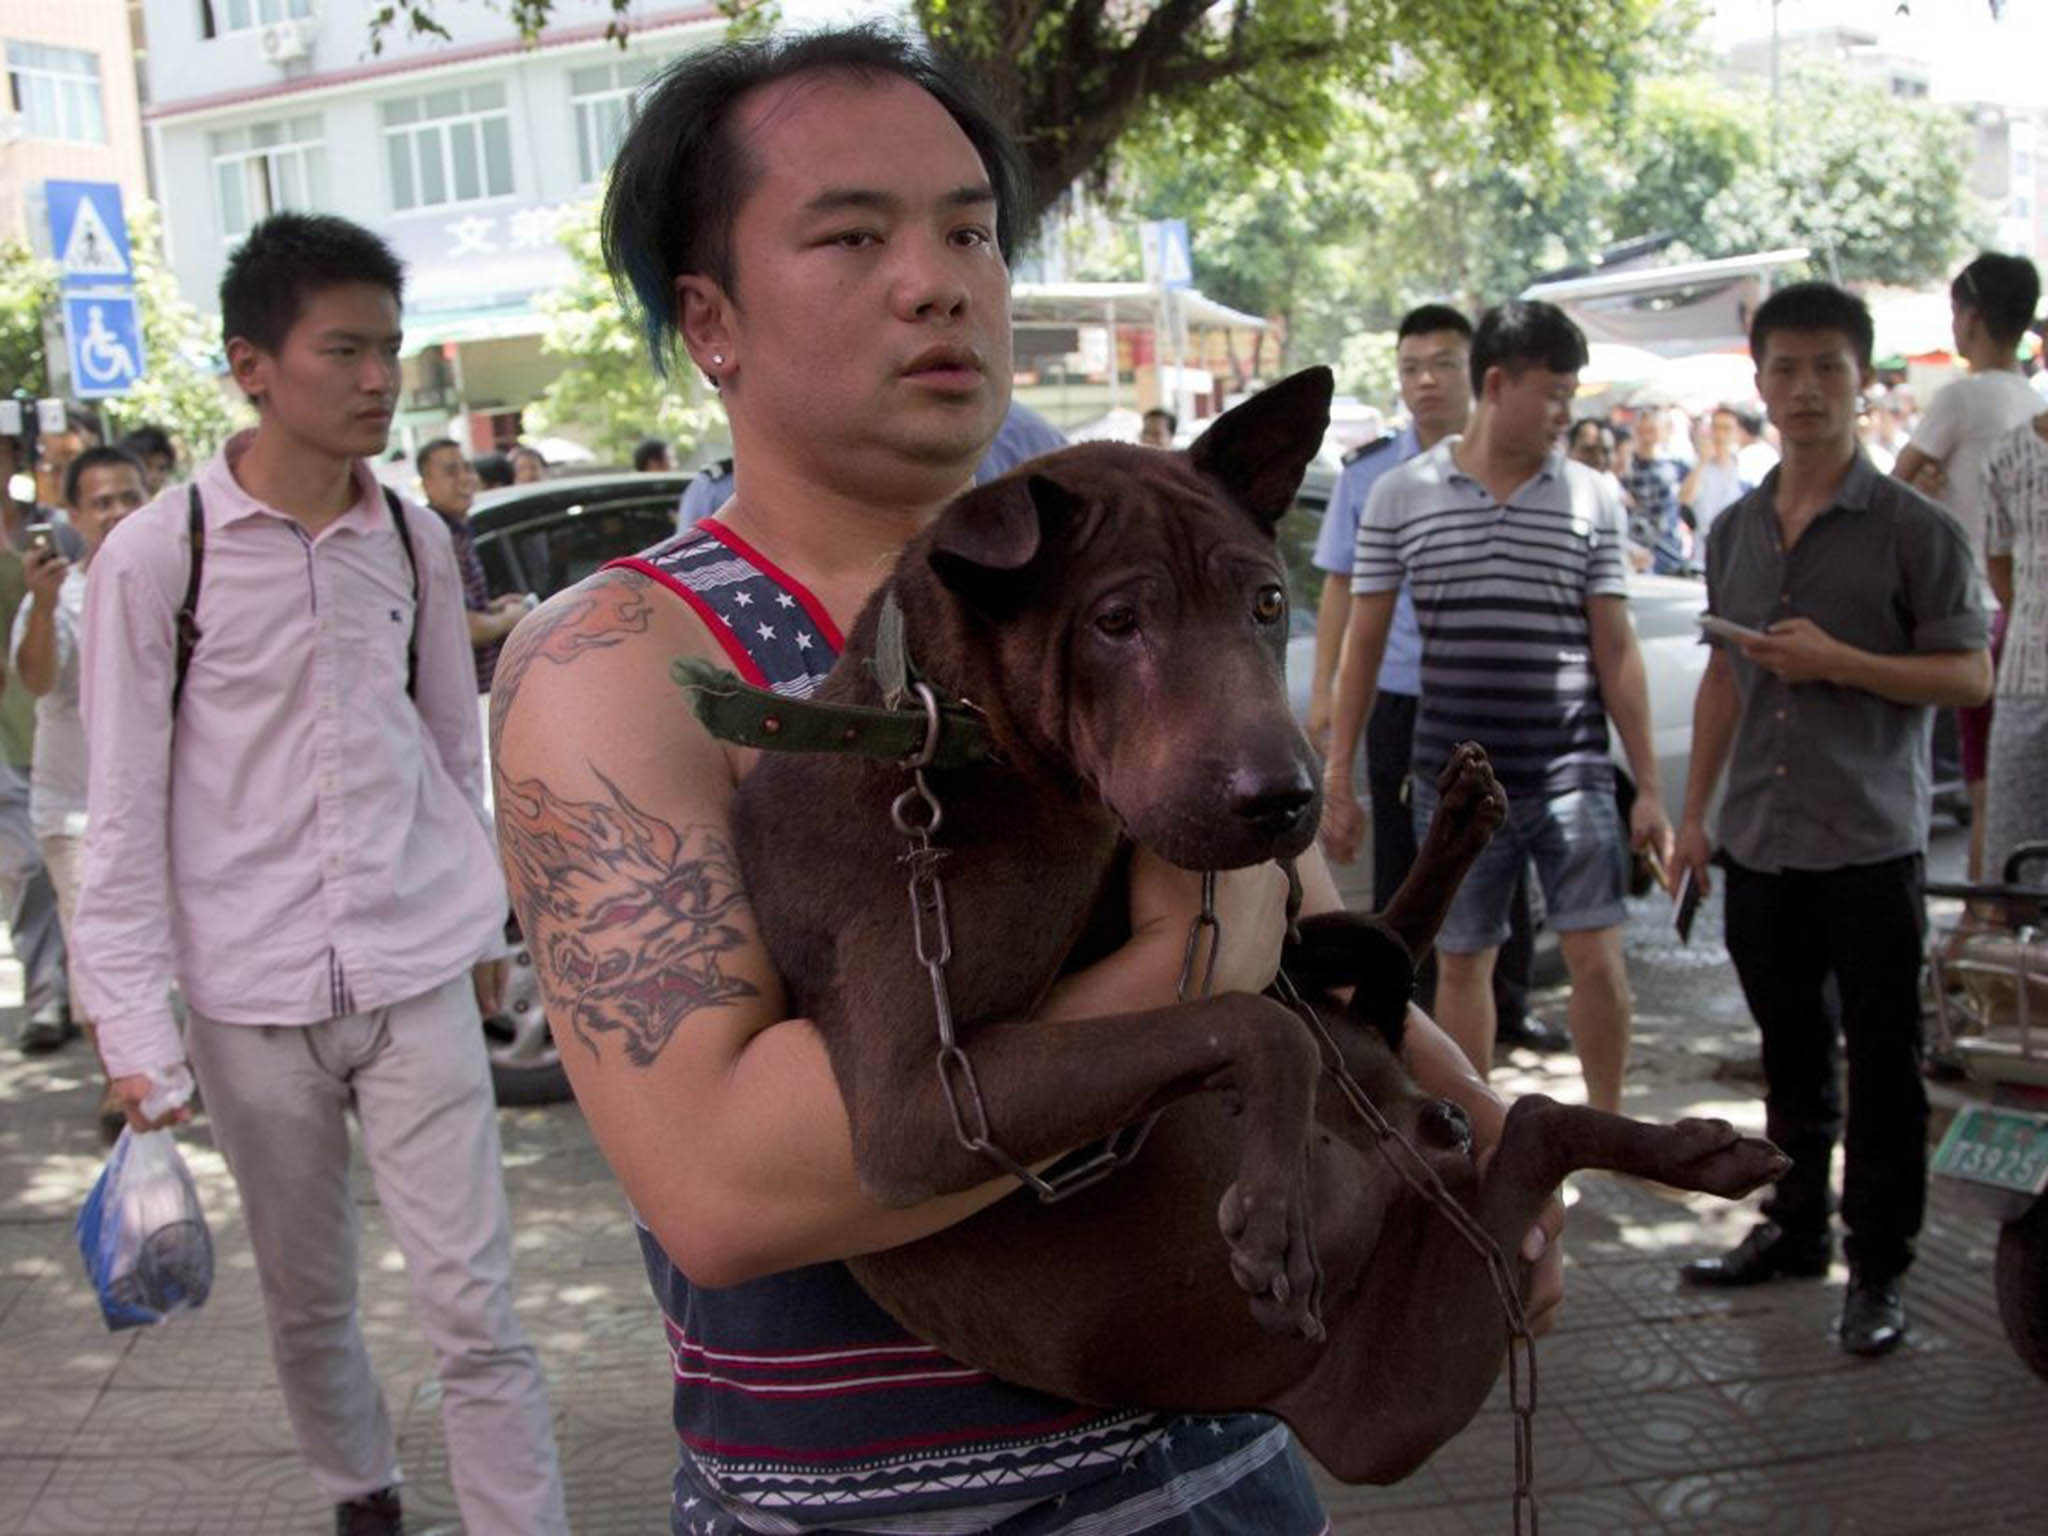 Yulin Dog Meat Festival 2016: Animal activists save caged dogs from slaughter